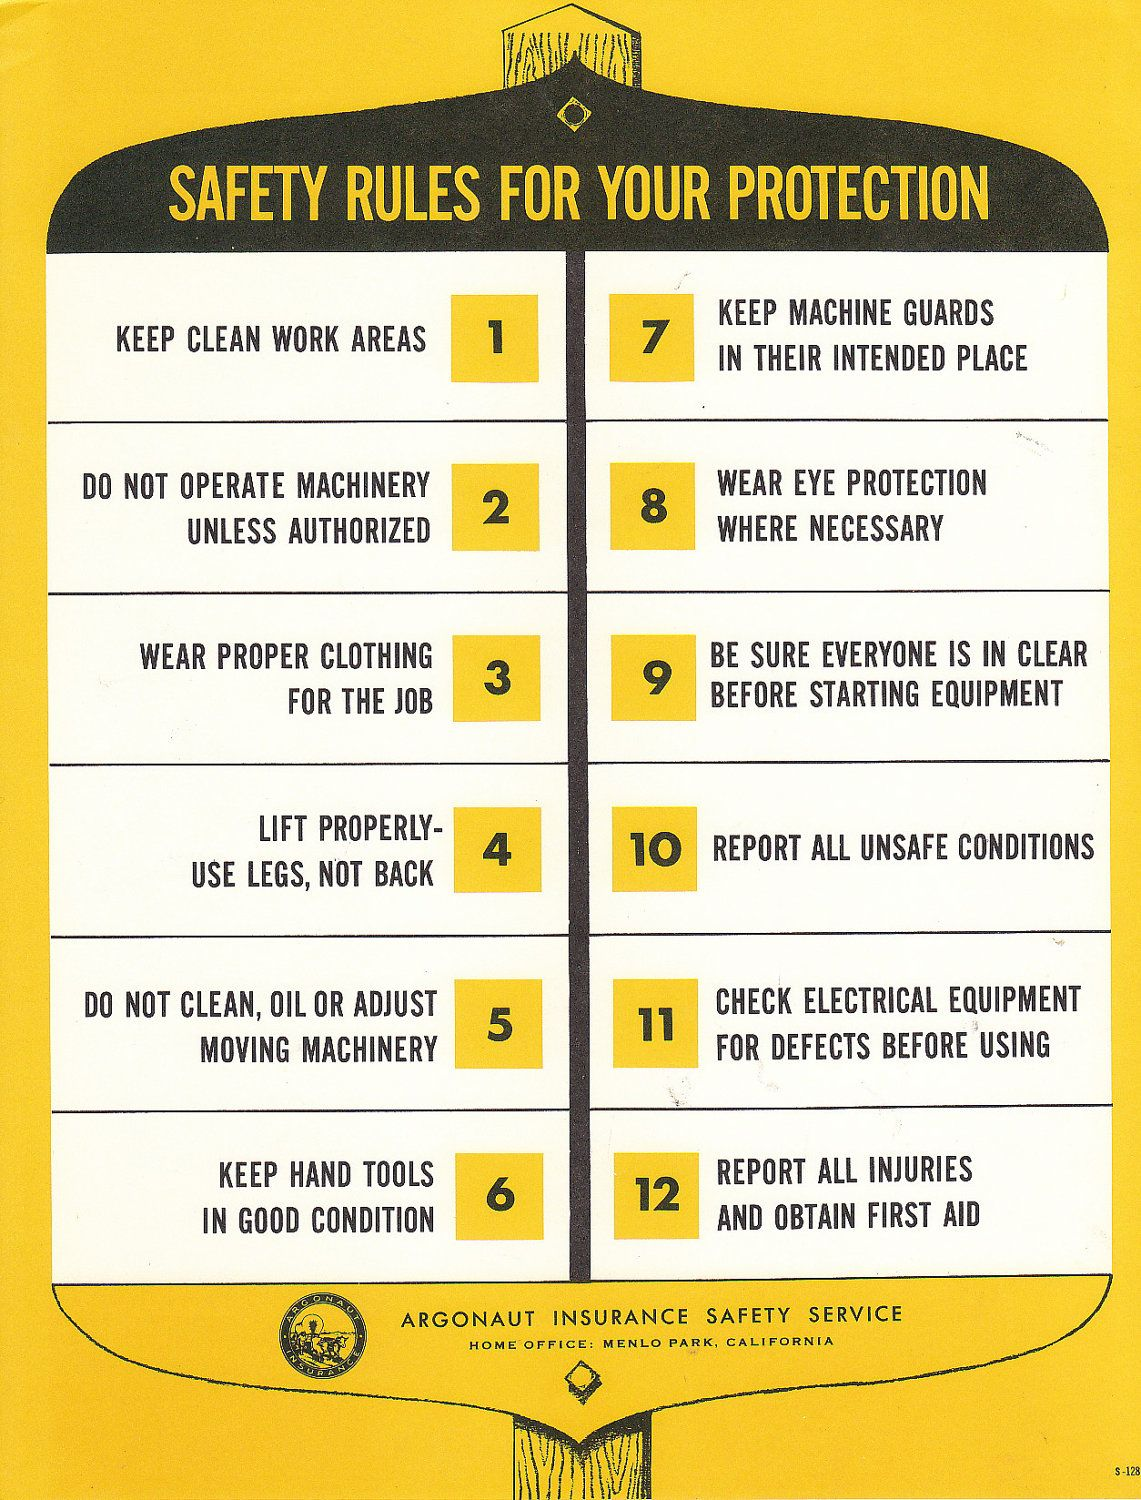 SAFETY TIPS Google Search safety posters Pinterest